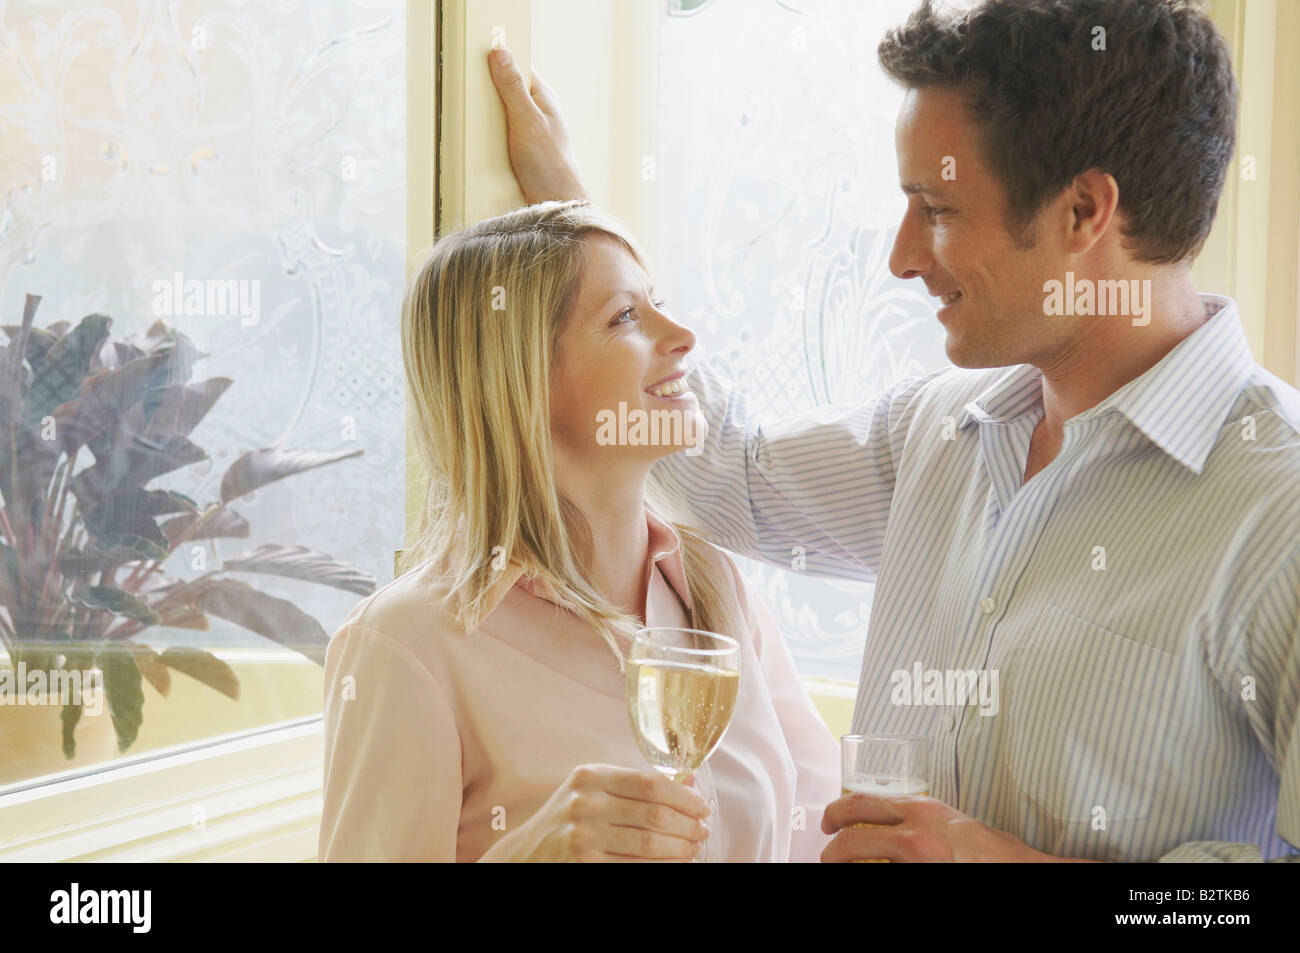 Couple in conversation in pub - Stock Image